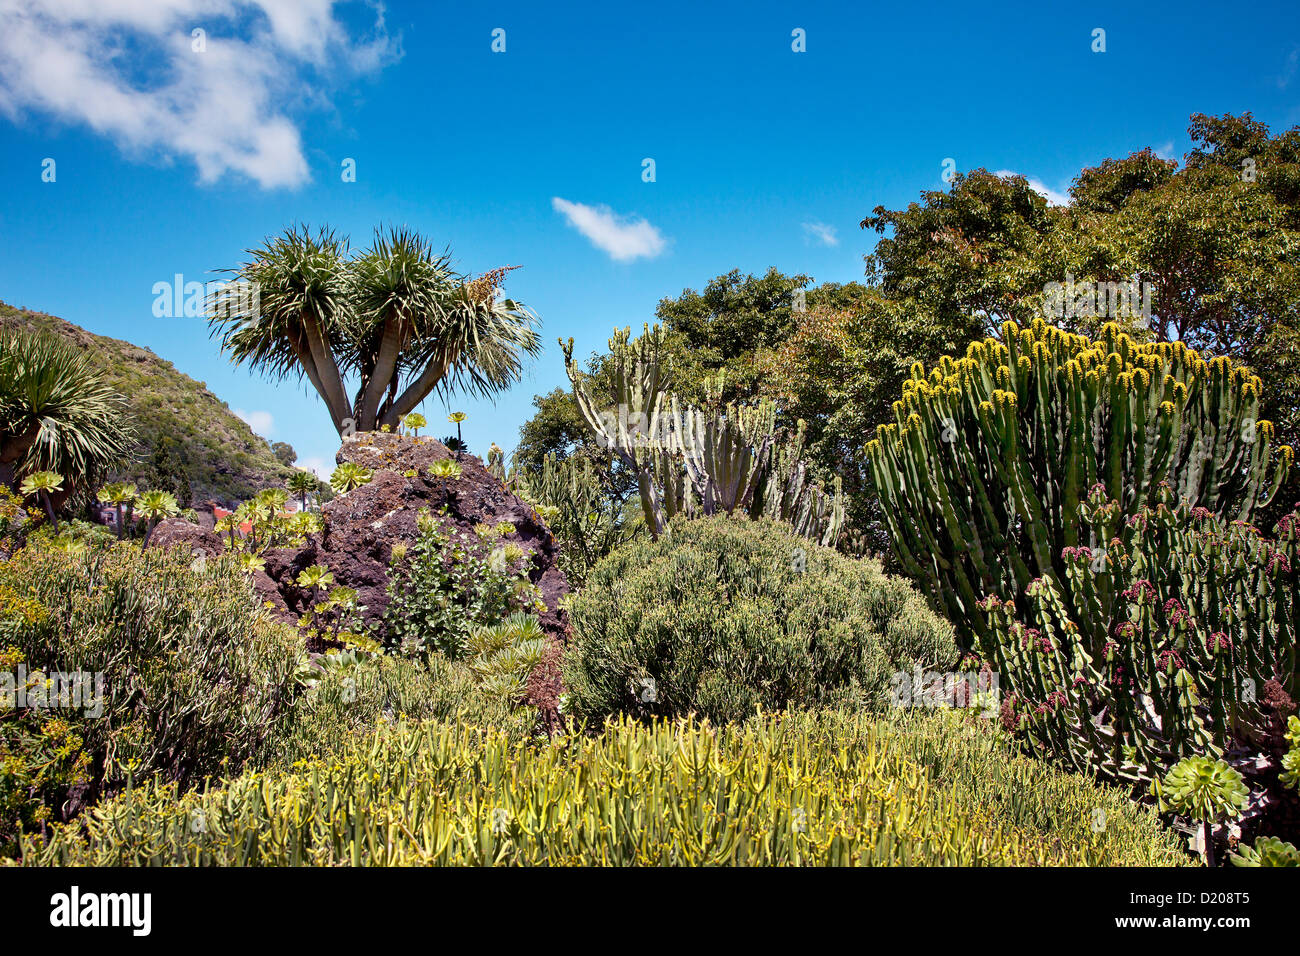 Jardin Canario, Tafira, Gran Canaria, Canary Islands, Spain - Stock Image